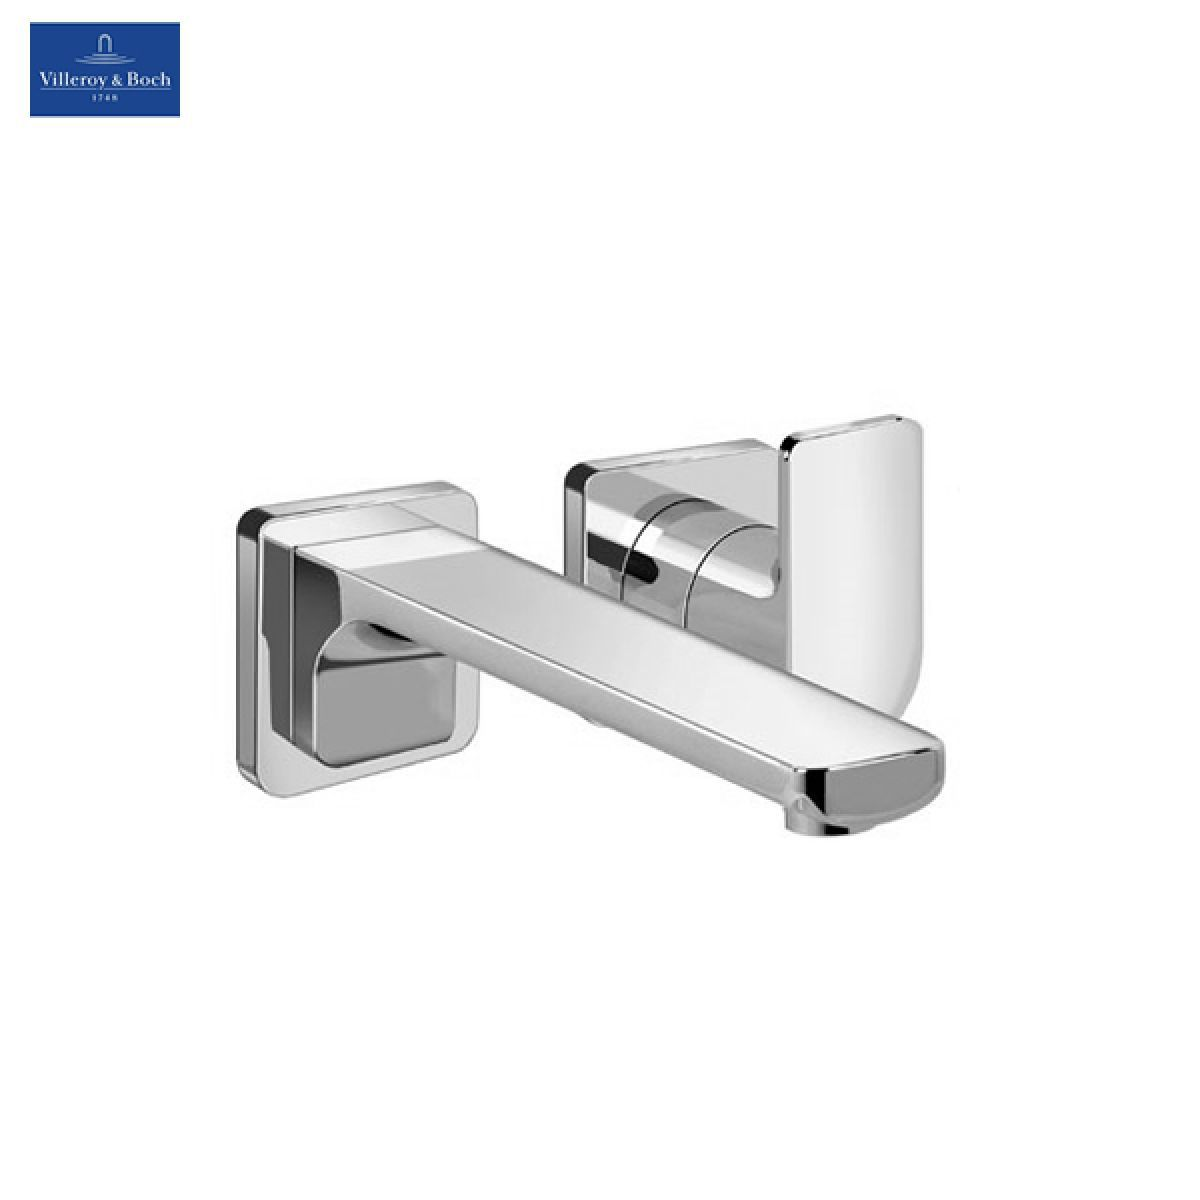 Villeroy and boch cult wall mounted basin mixer tap uk - Villeroy and boch ...